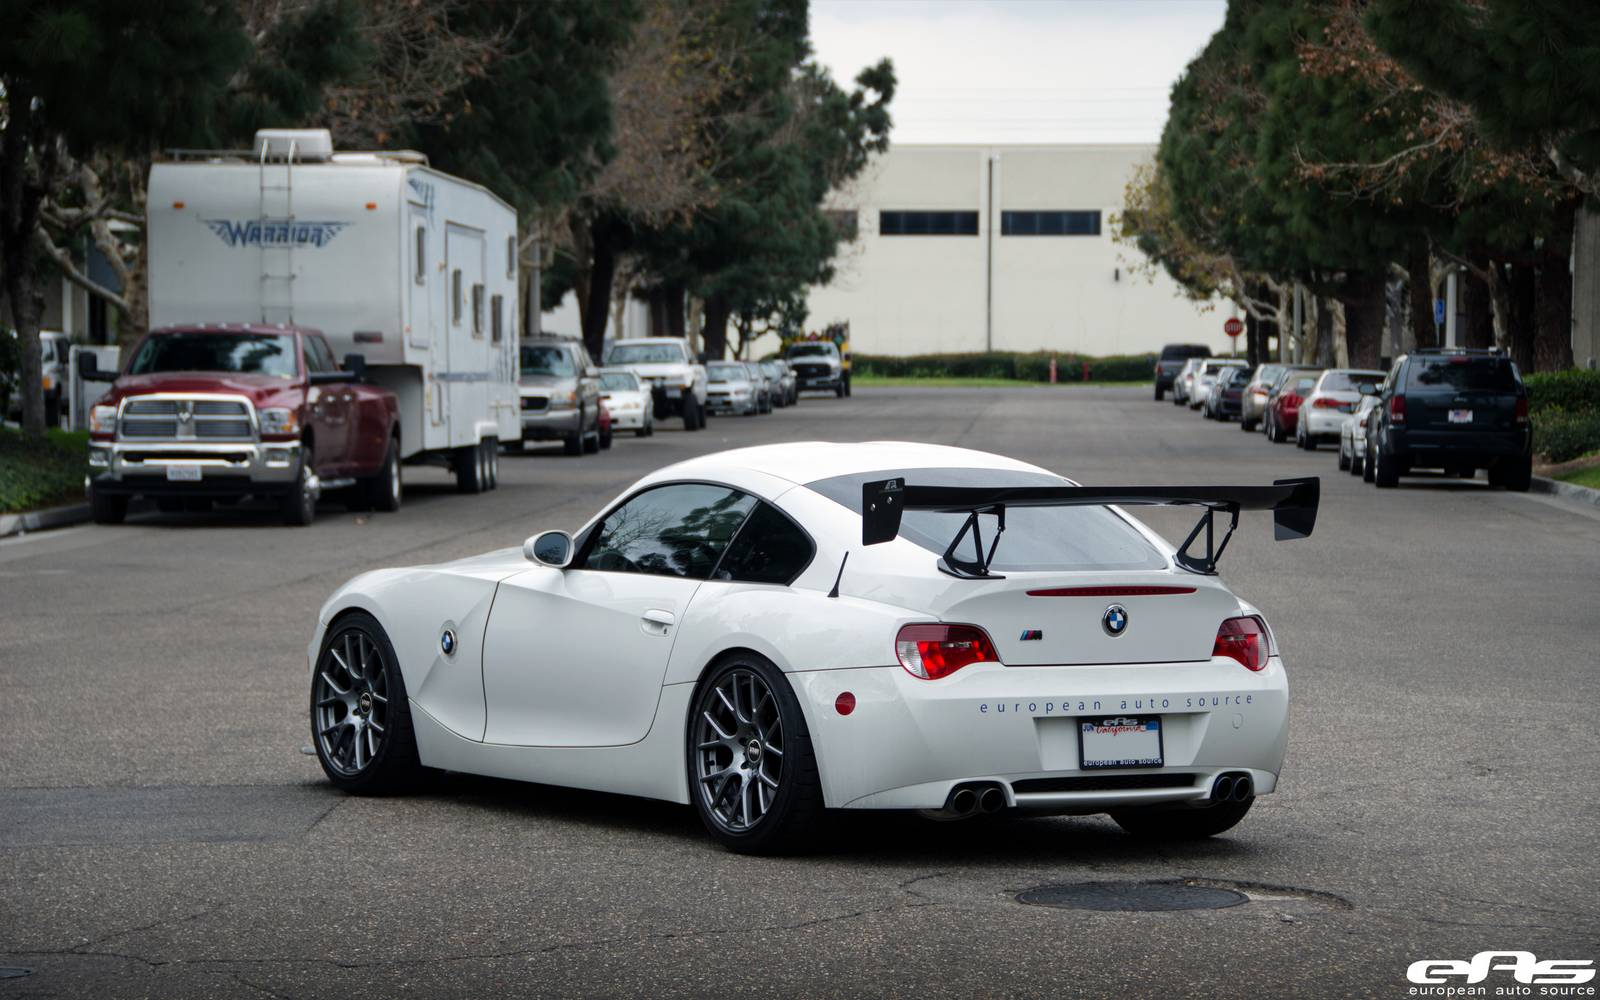 Coupe Series bmw z4 m coupe for sale BMW Z4 M by European Auto Source - GTspirit